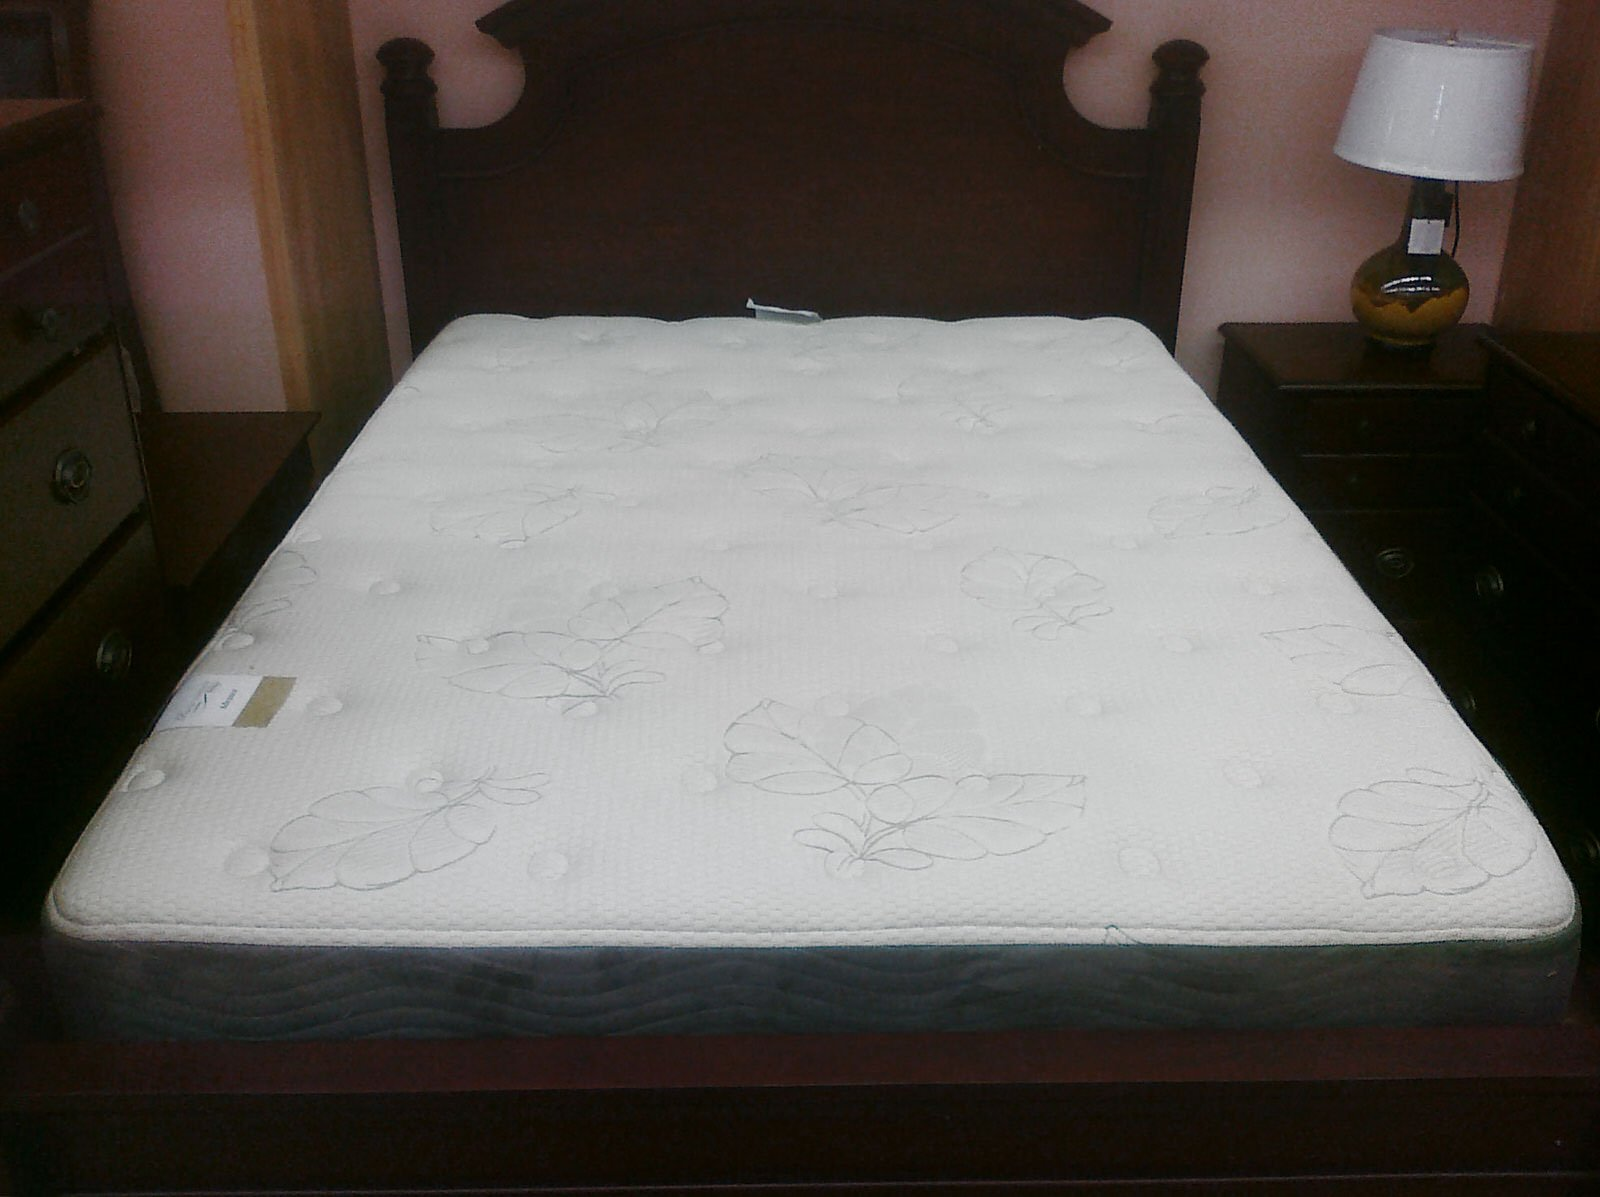 Wolf Corp RMDS-10 IDream Moondance Supreme Plush Mattress Queen Sale